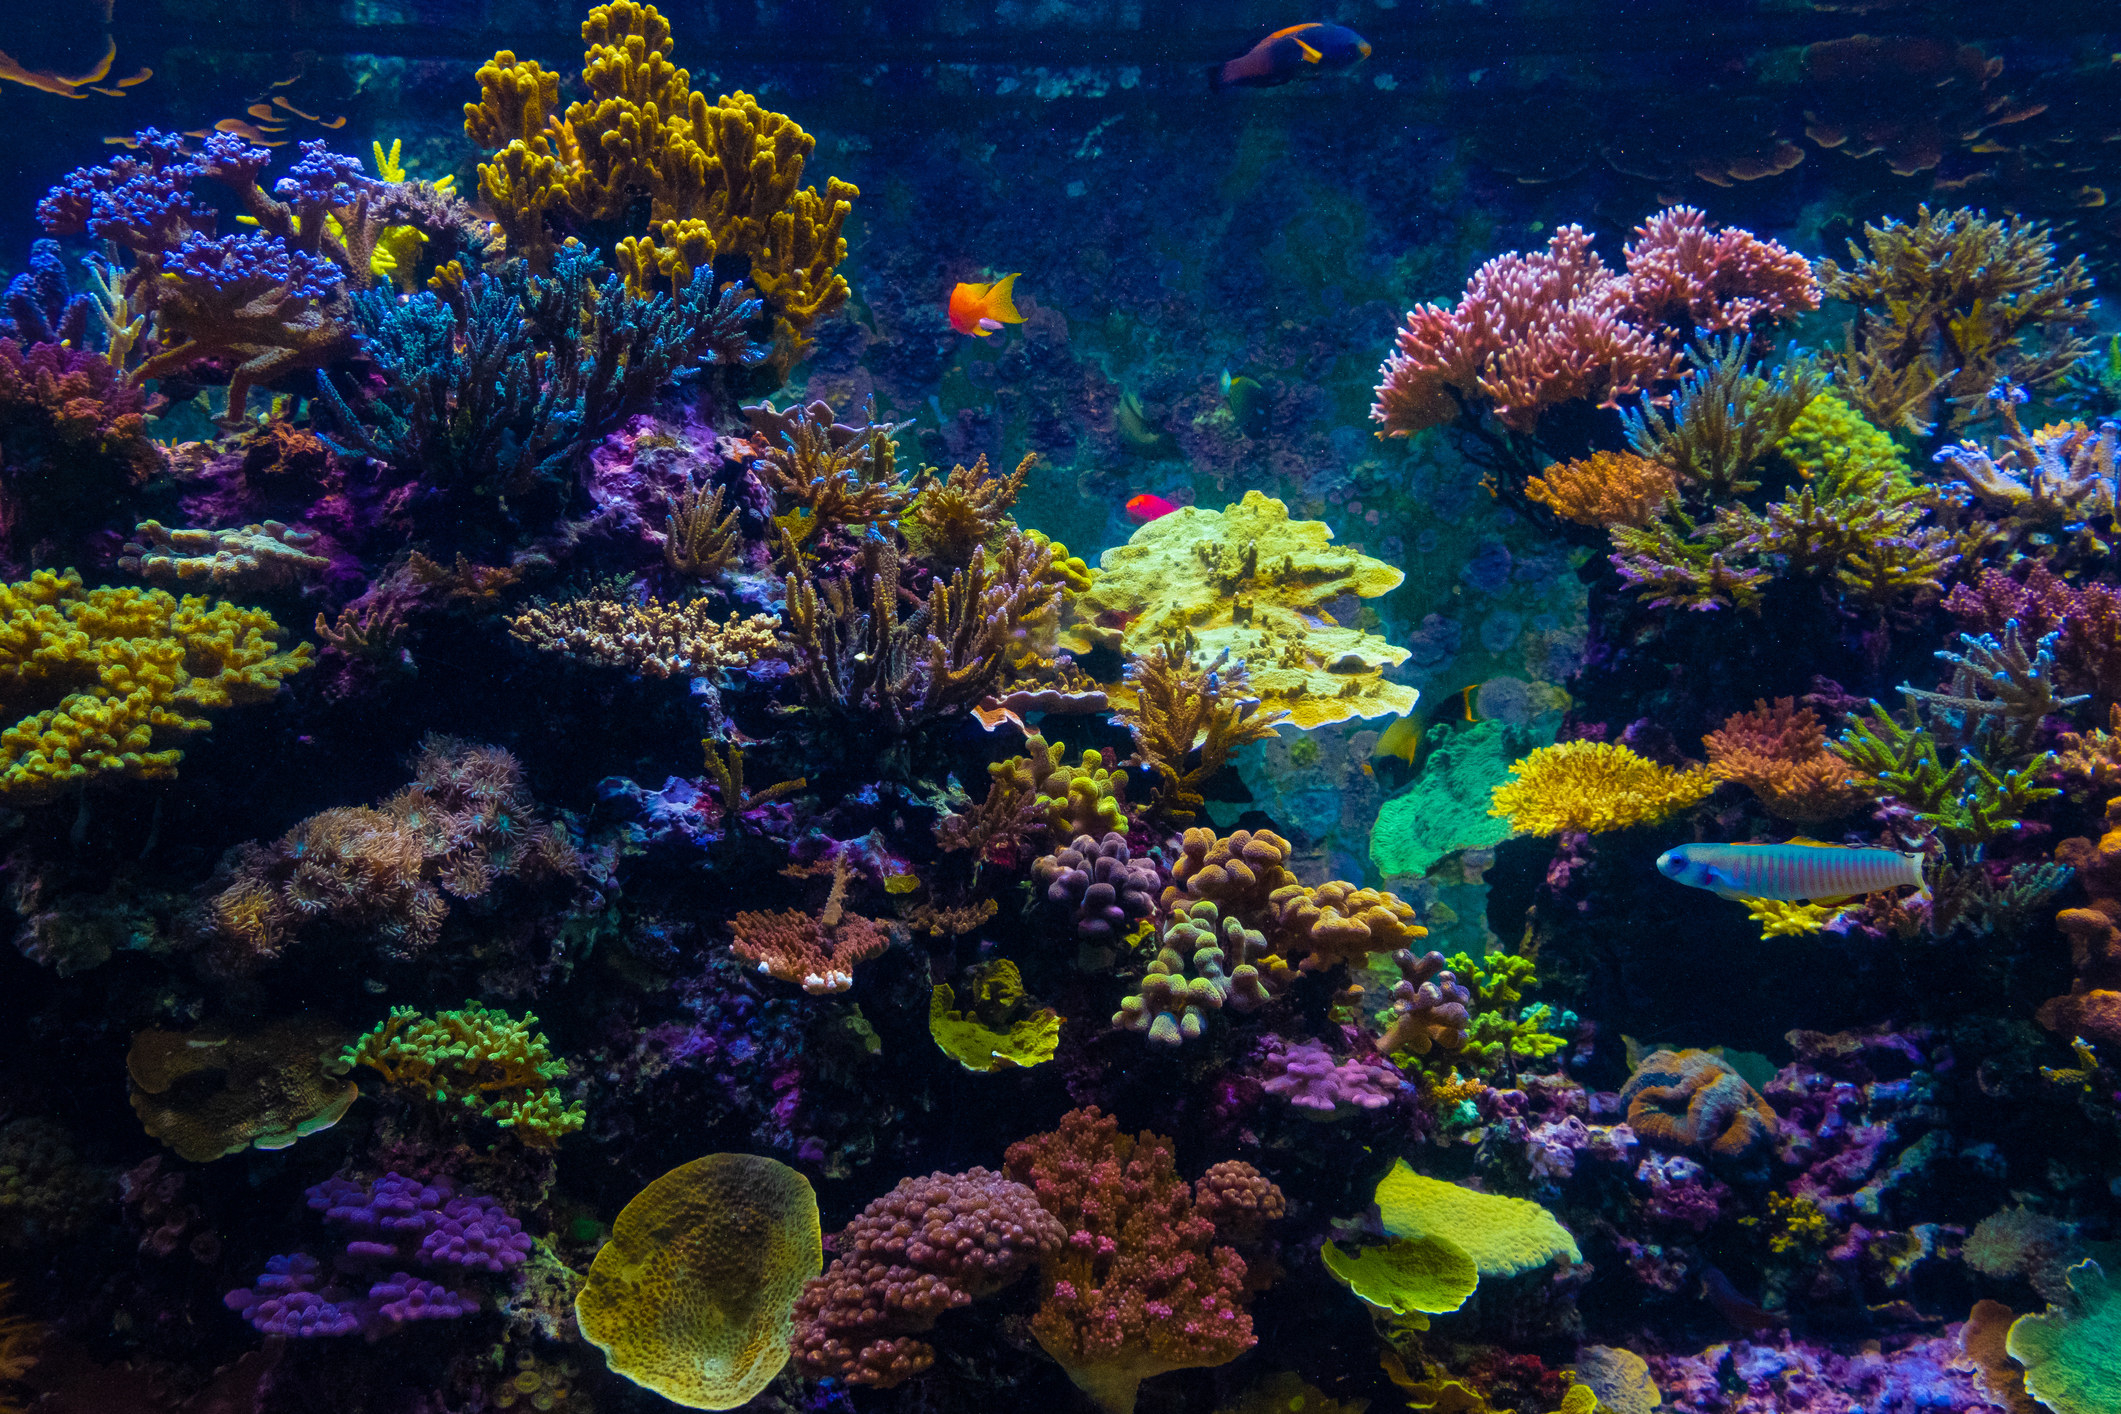 A colorful area of the Great Barrier Reef